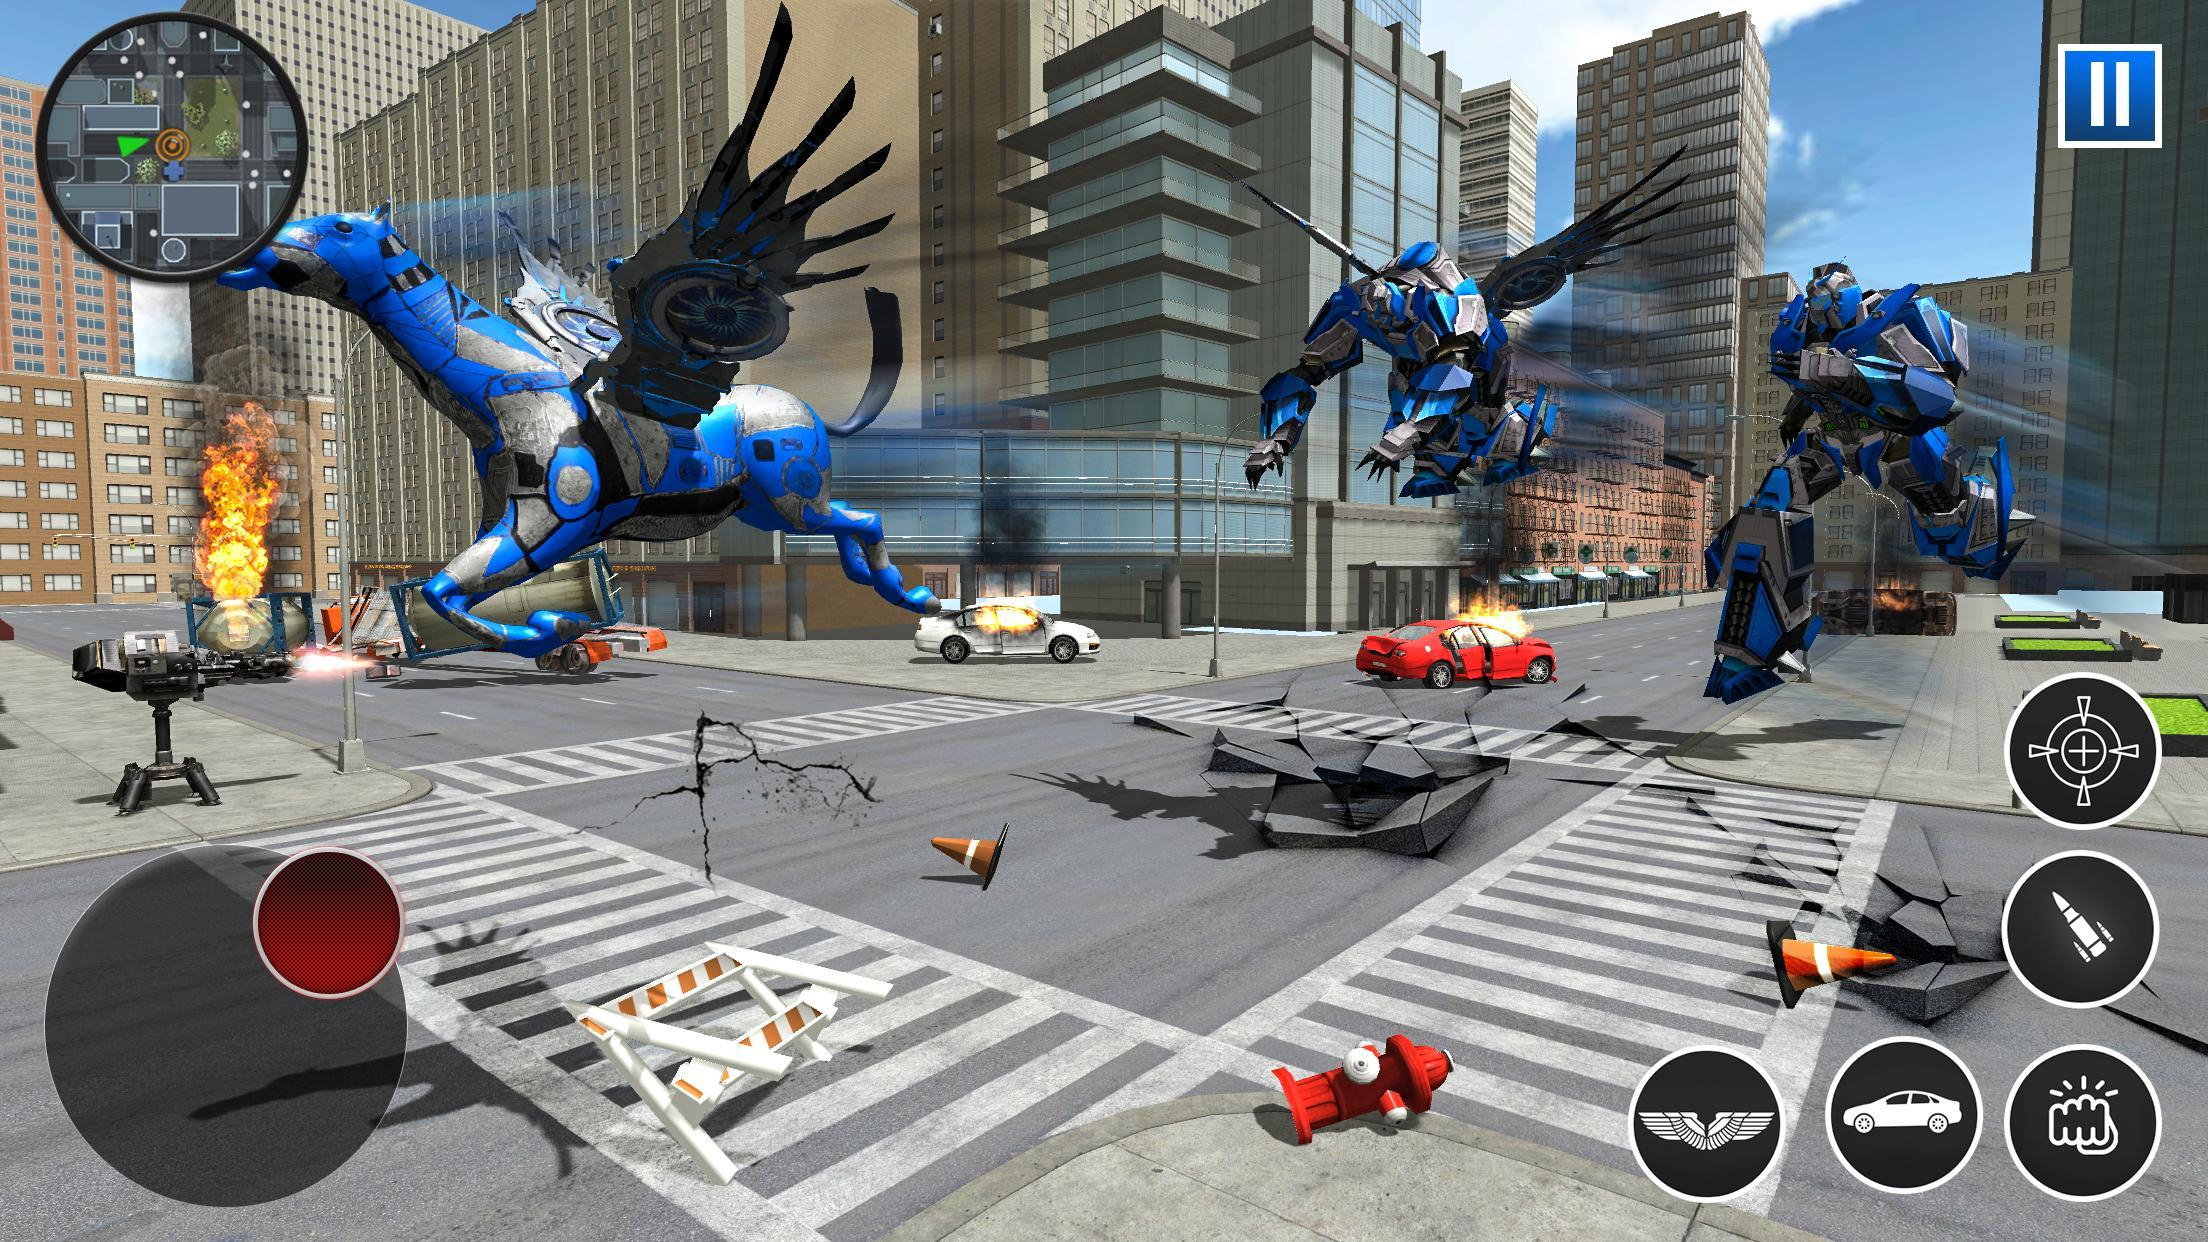 US Police Robot Car Flying Horse Simulator Game for Android